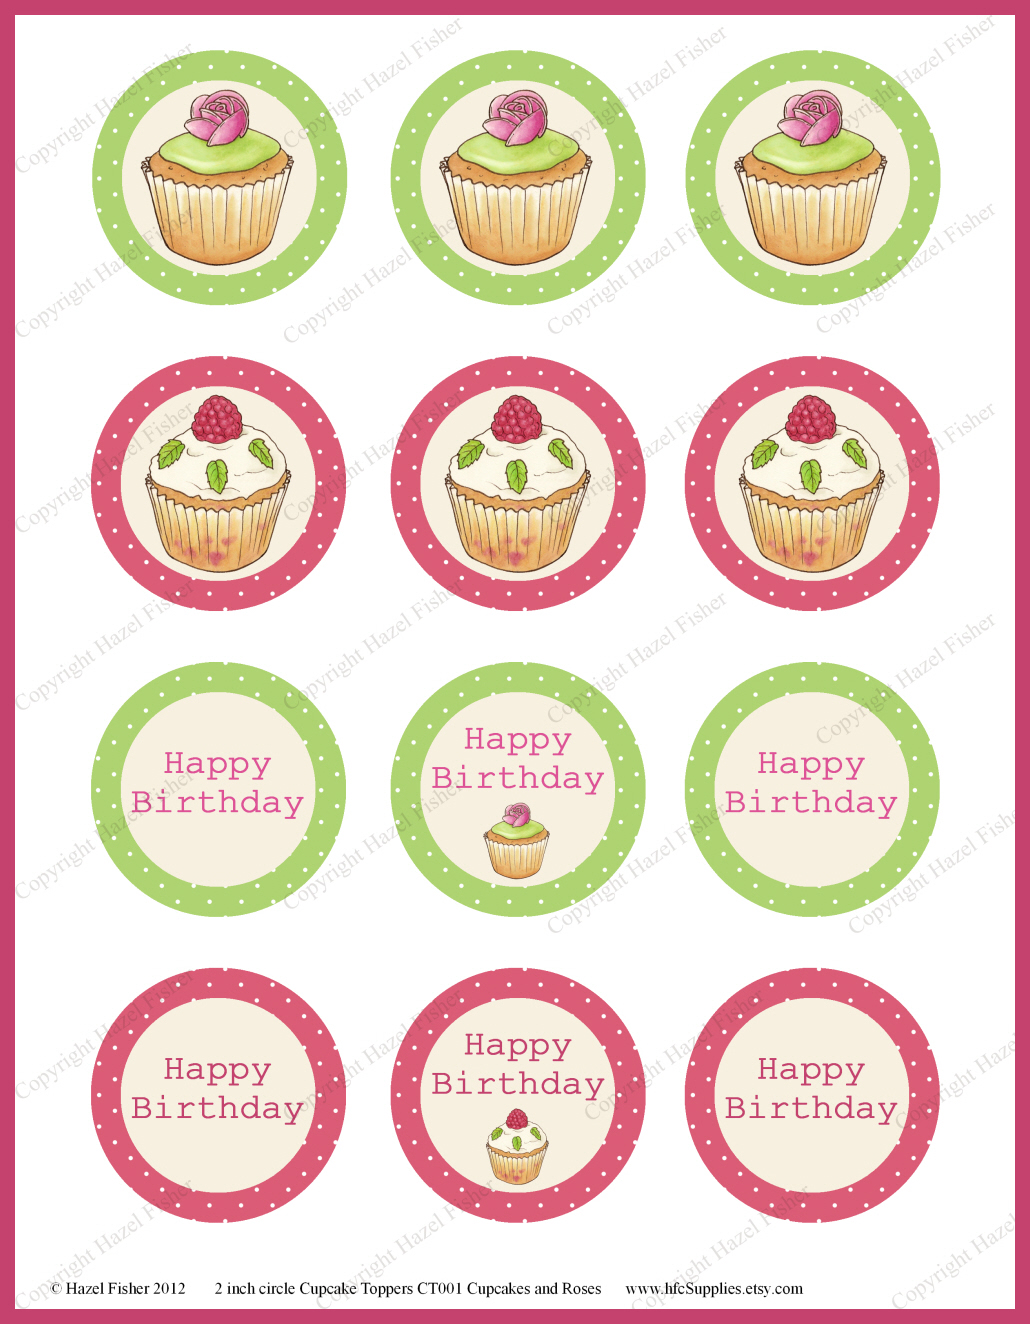 Cute 1st Job Resume Template Huge 2 Circle Template Clean 2 Year Calendar Template 2007 Powerpoint Templates Free Youthful 2014 Monthly Calendar Template Green2014 Resume Template Hazel Fisher Creations: Cupcakes And Roses \u2013 Cupcake Toppers